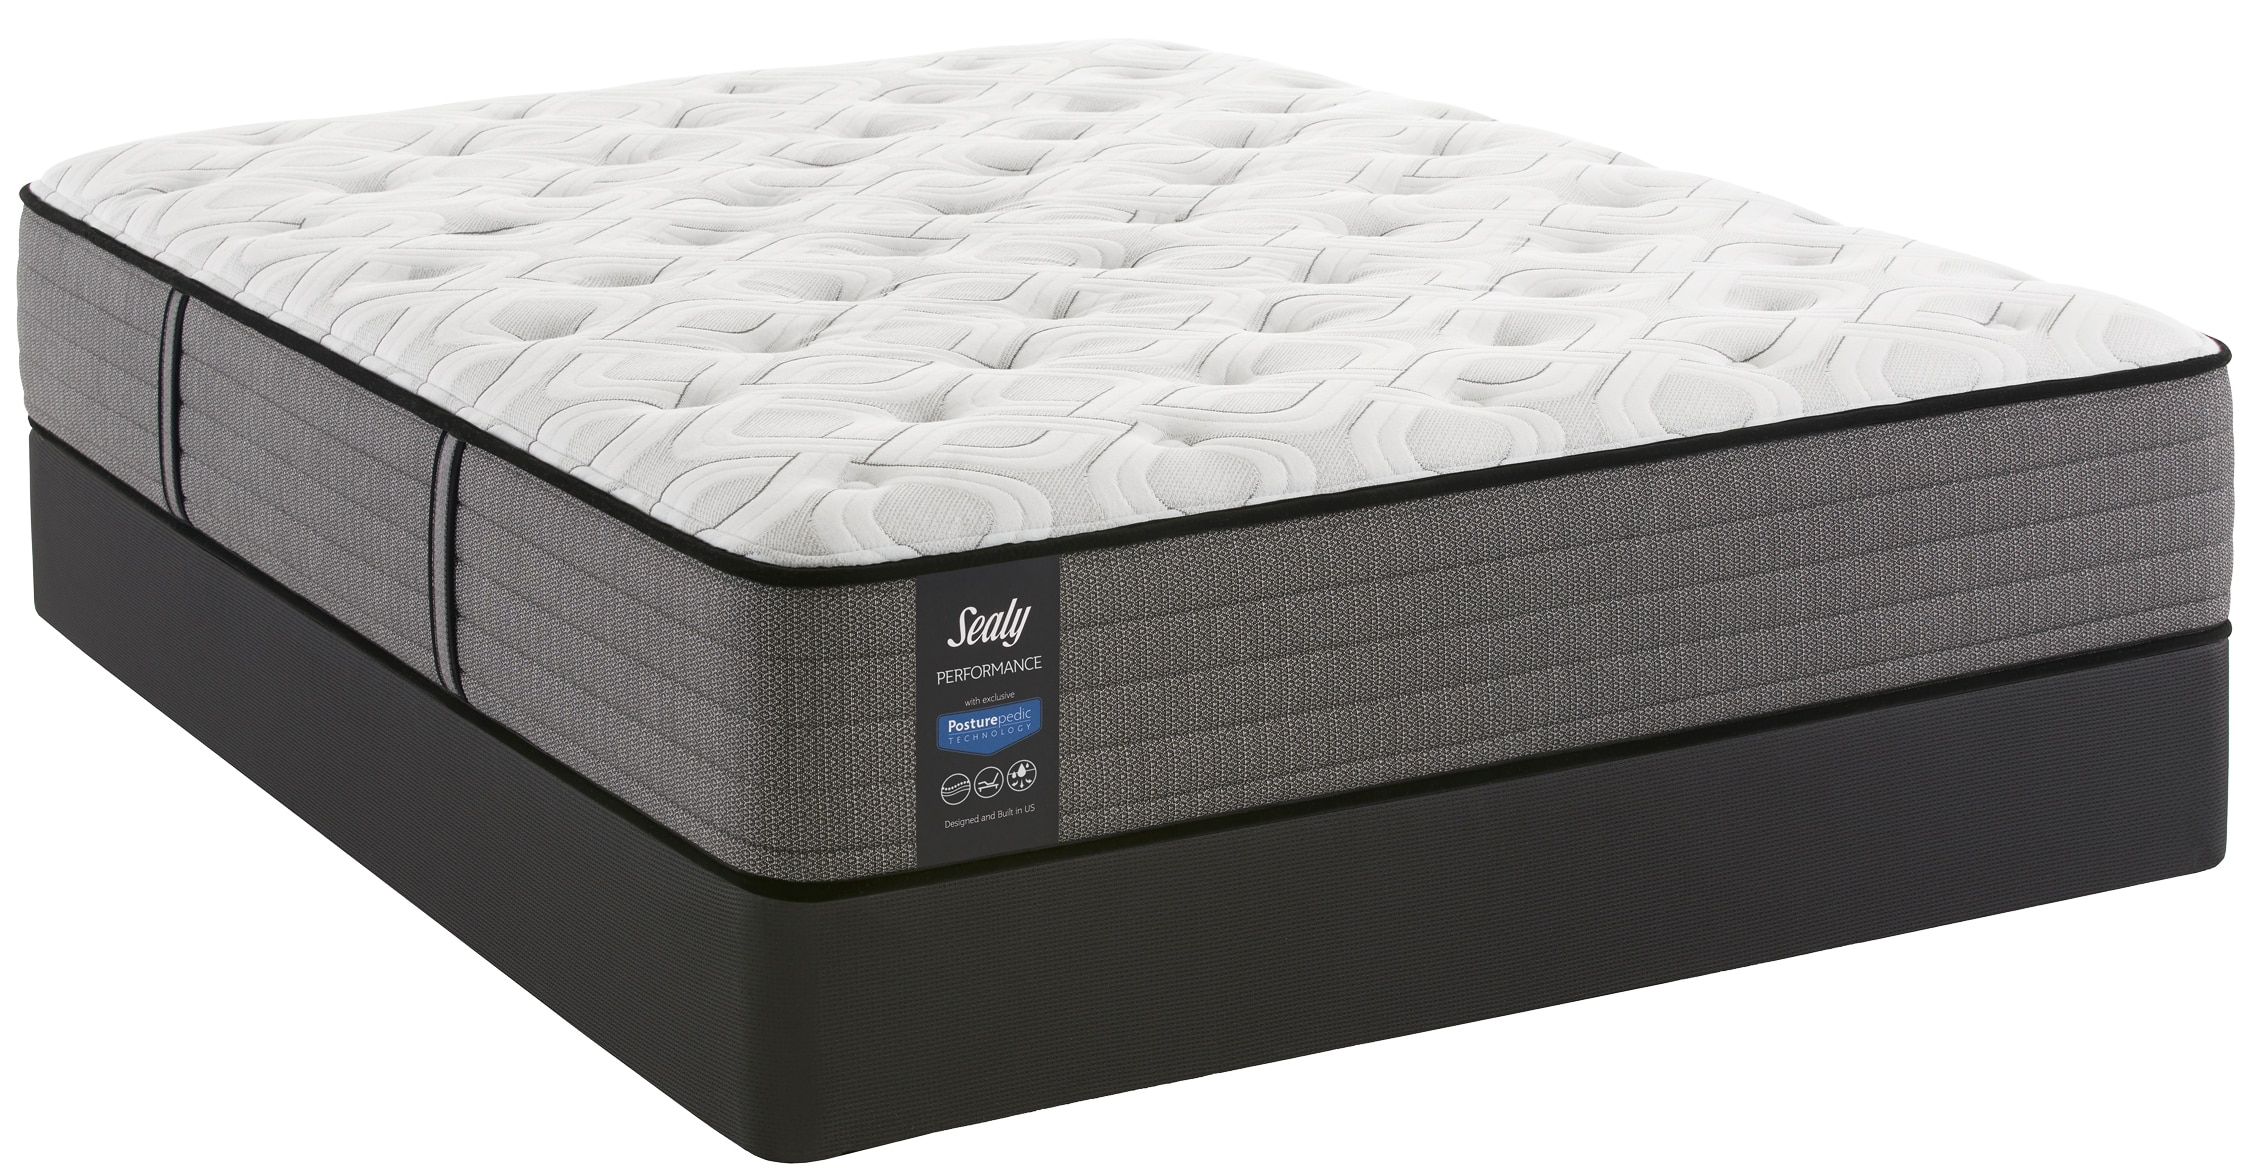 Morning Dove Firm Queen Mattress and Boxspring Set